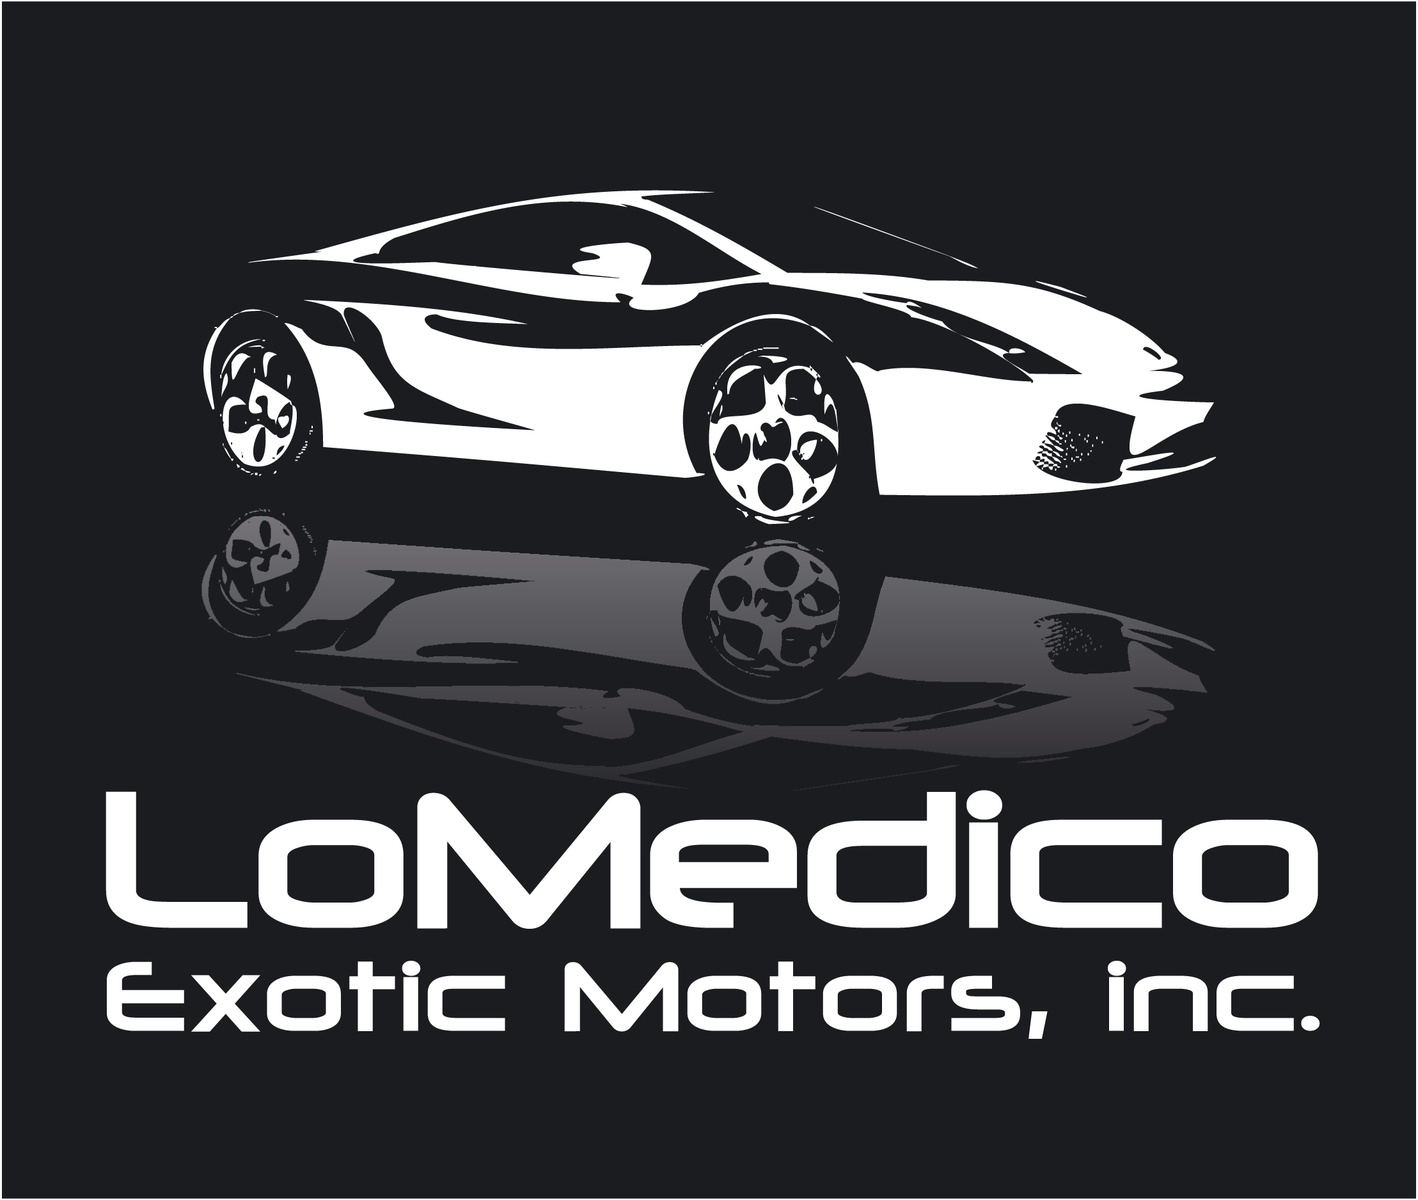 Mario Lomedico Exotic Motors Shrewsbury Nj Read